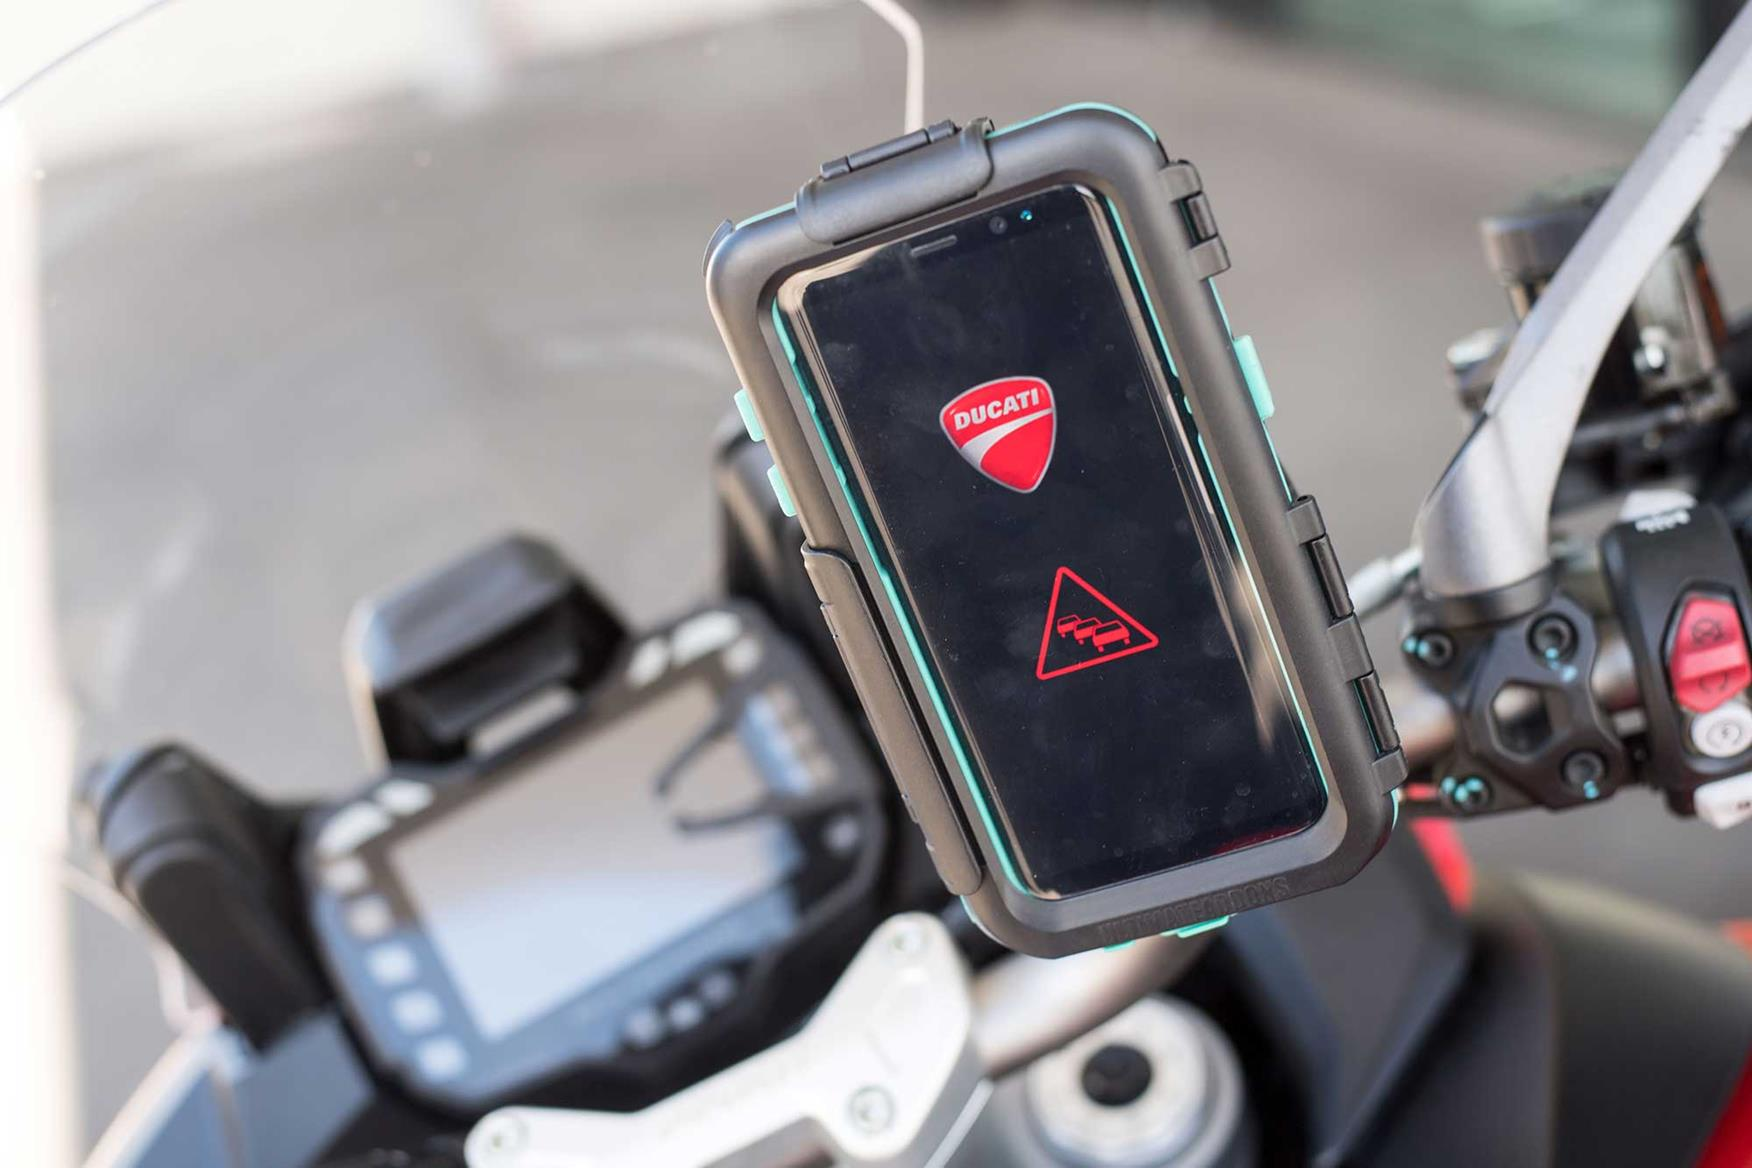 Ducati demonstrated their anti-crash tech with a Multistrada